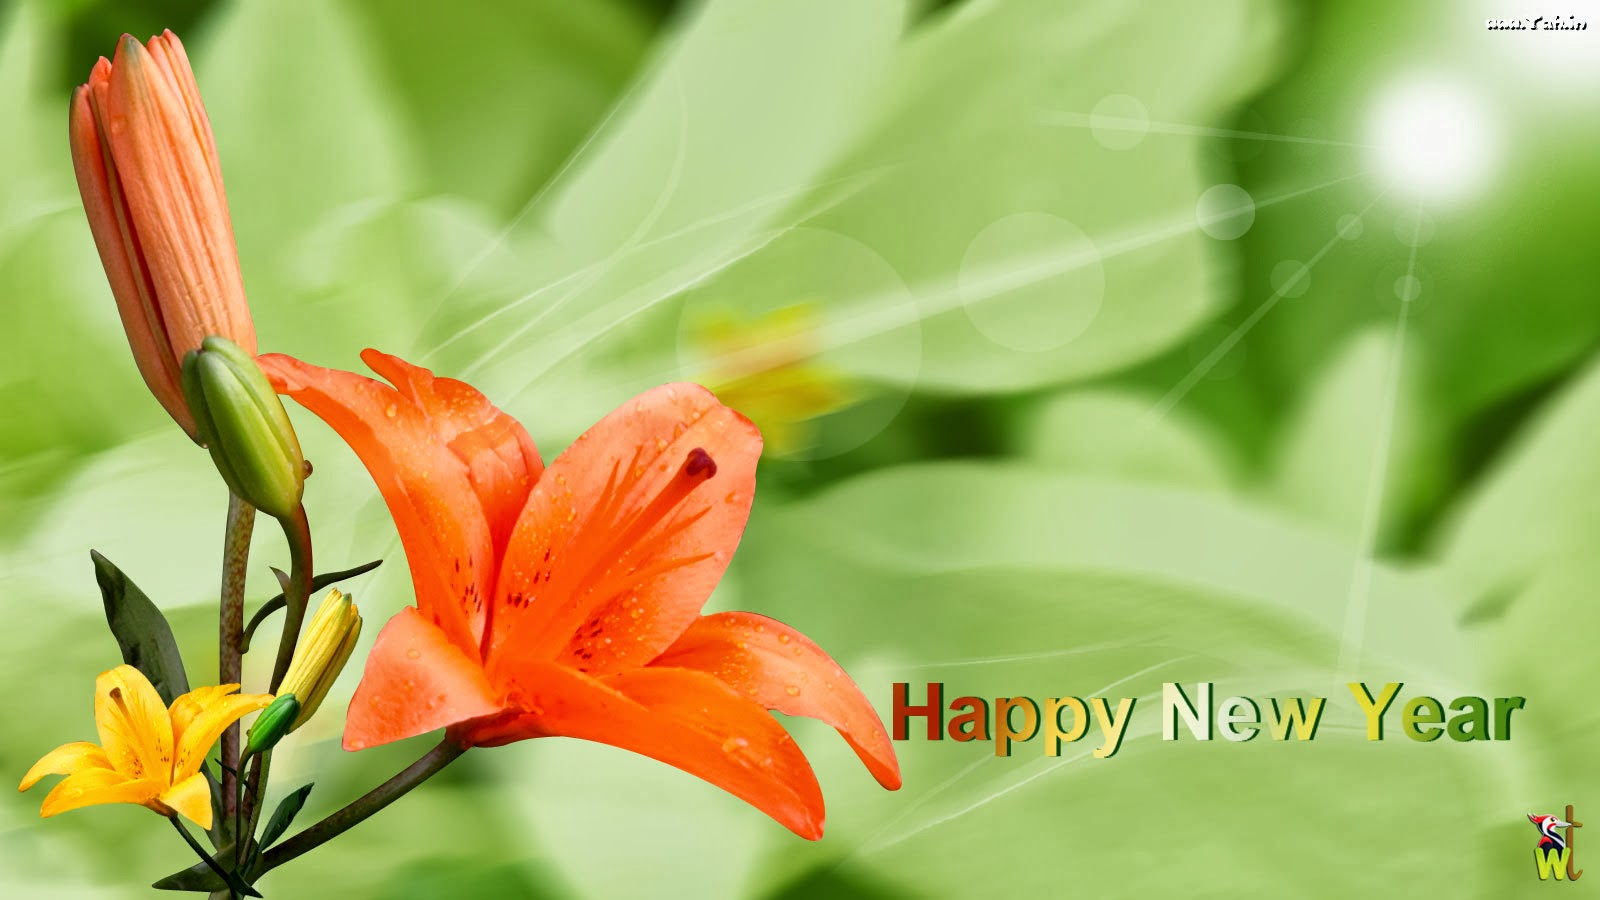 New Year Flower Gifts Flowers Wishes Wallpapers For New Year 2014